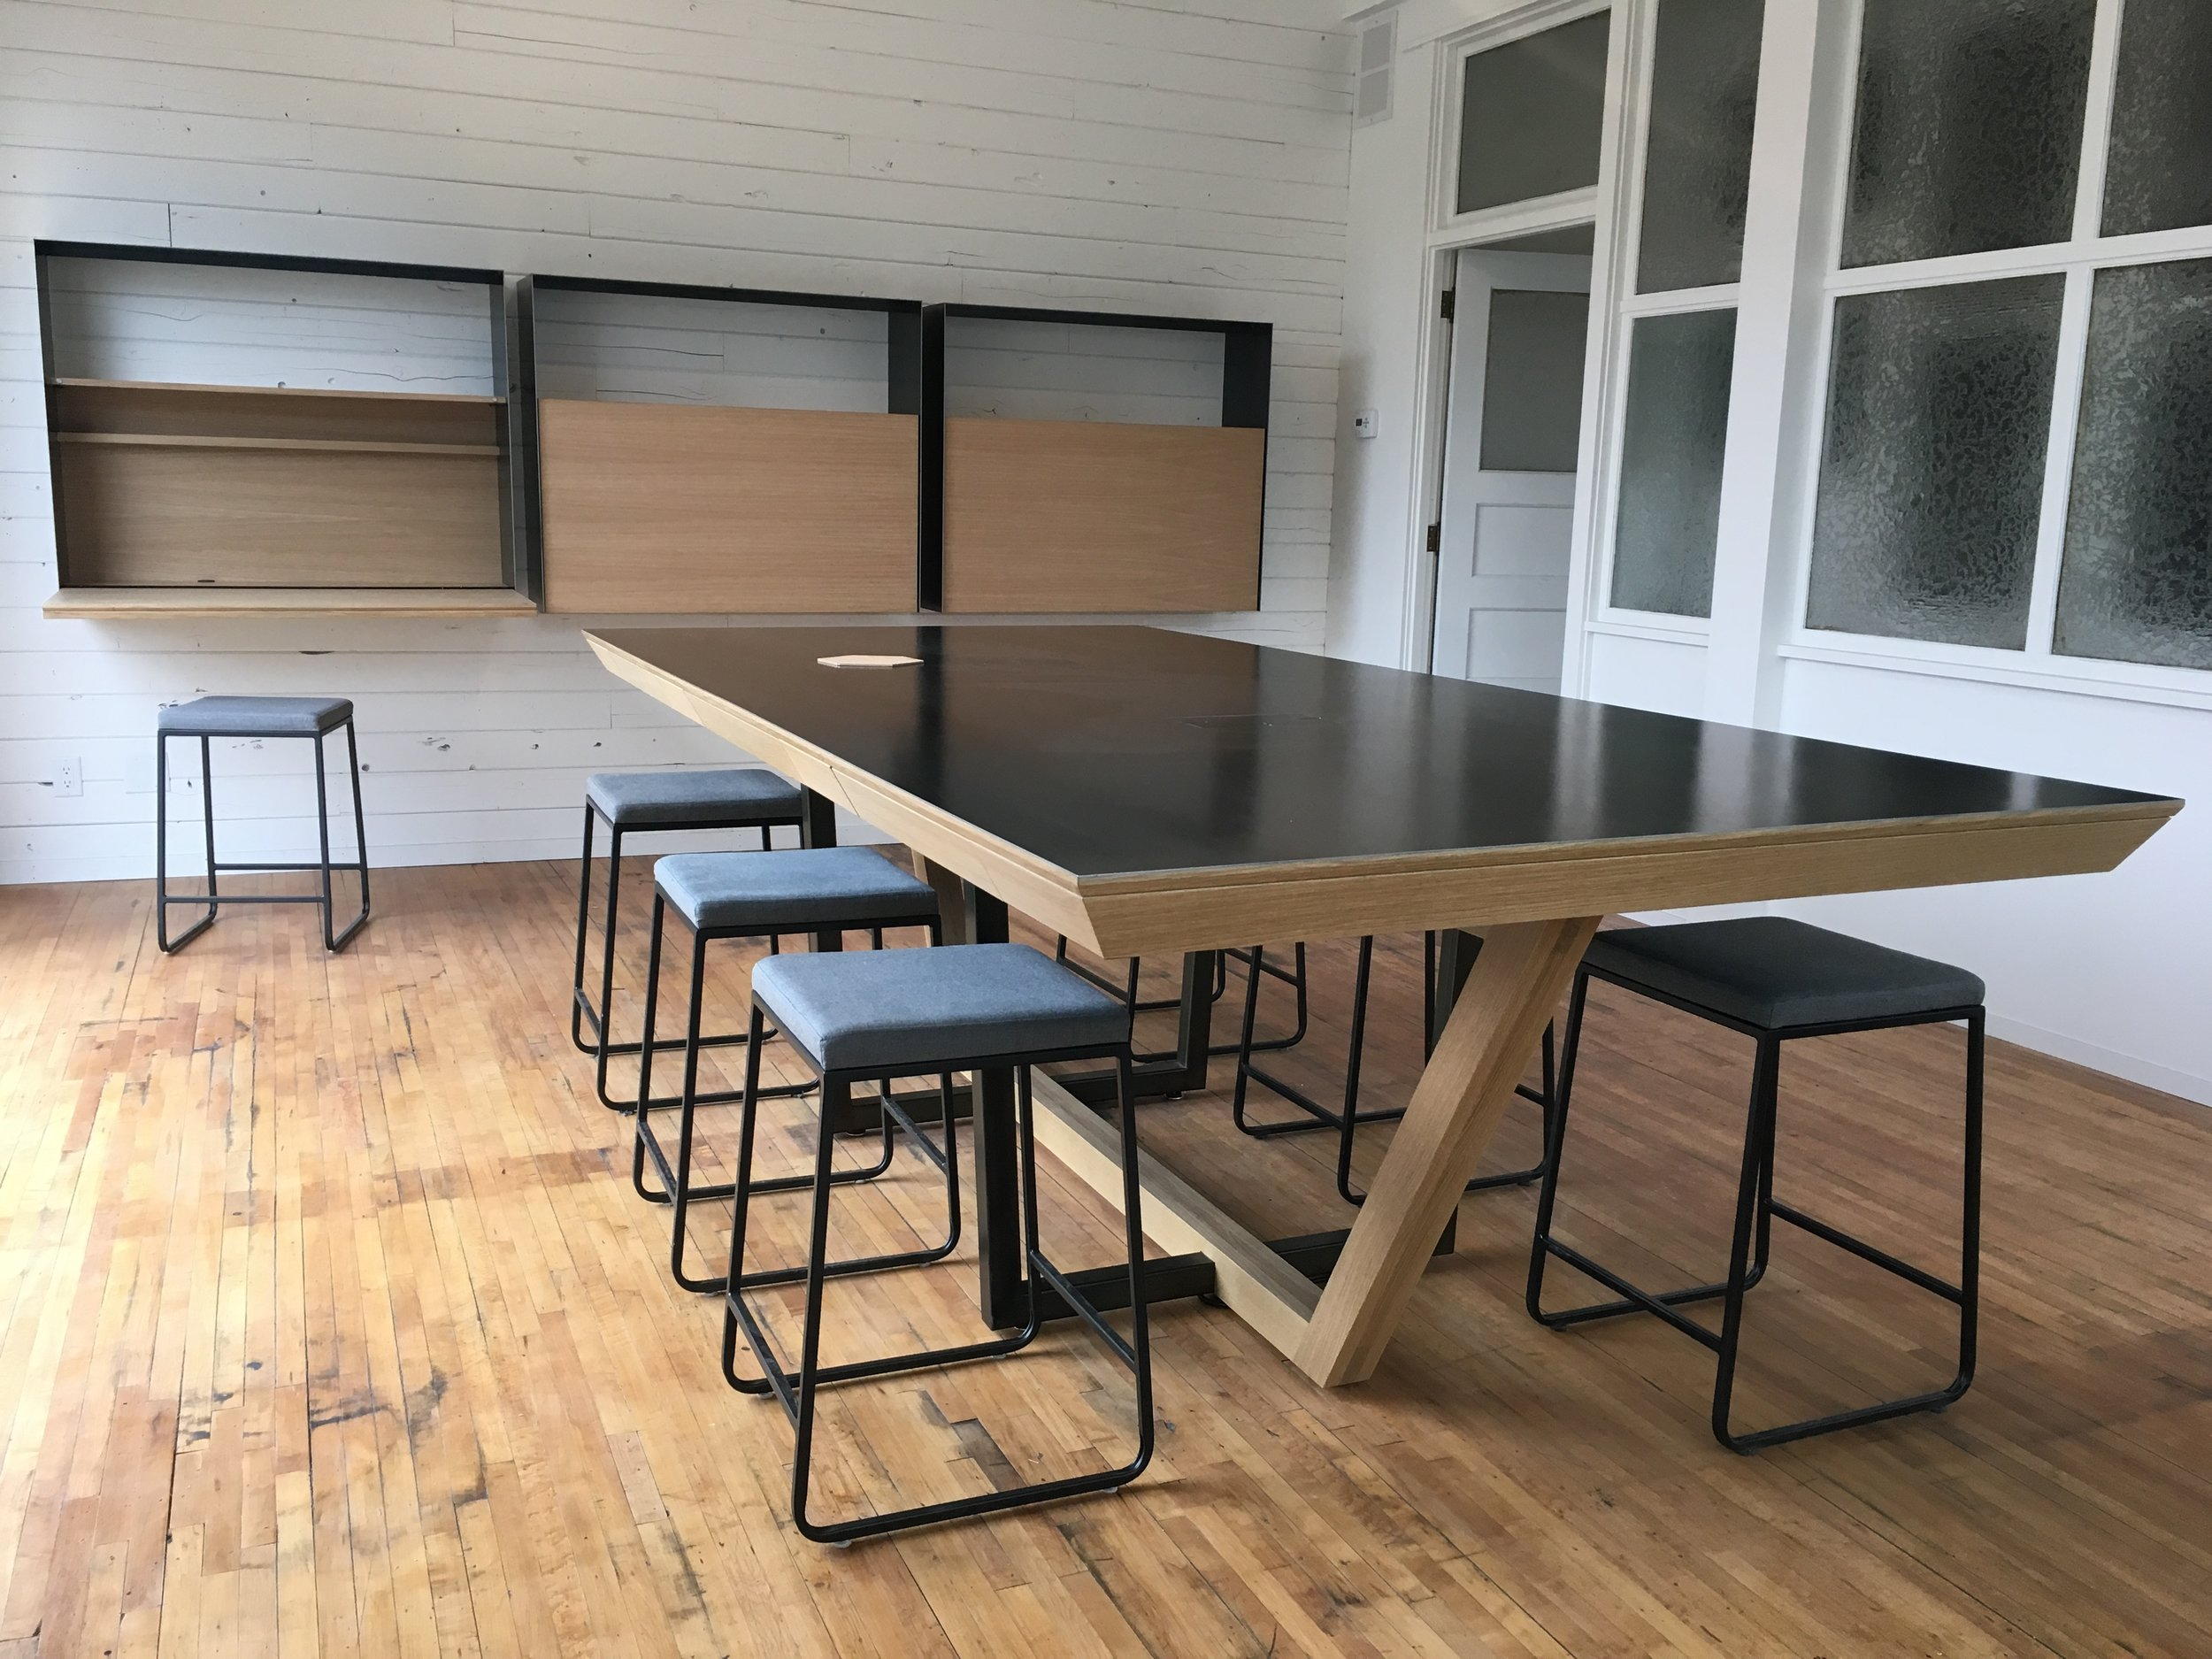 Collaboration with Strand Design in Minneapolis for custom conference table and wall desks.